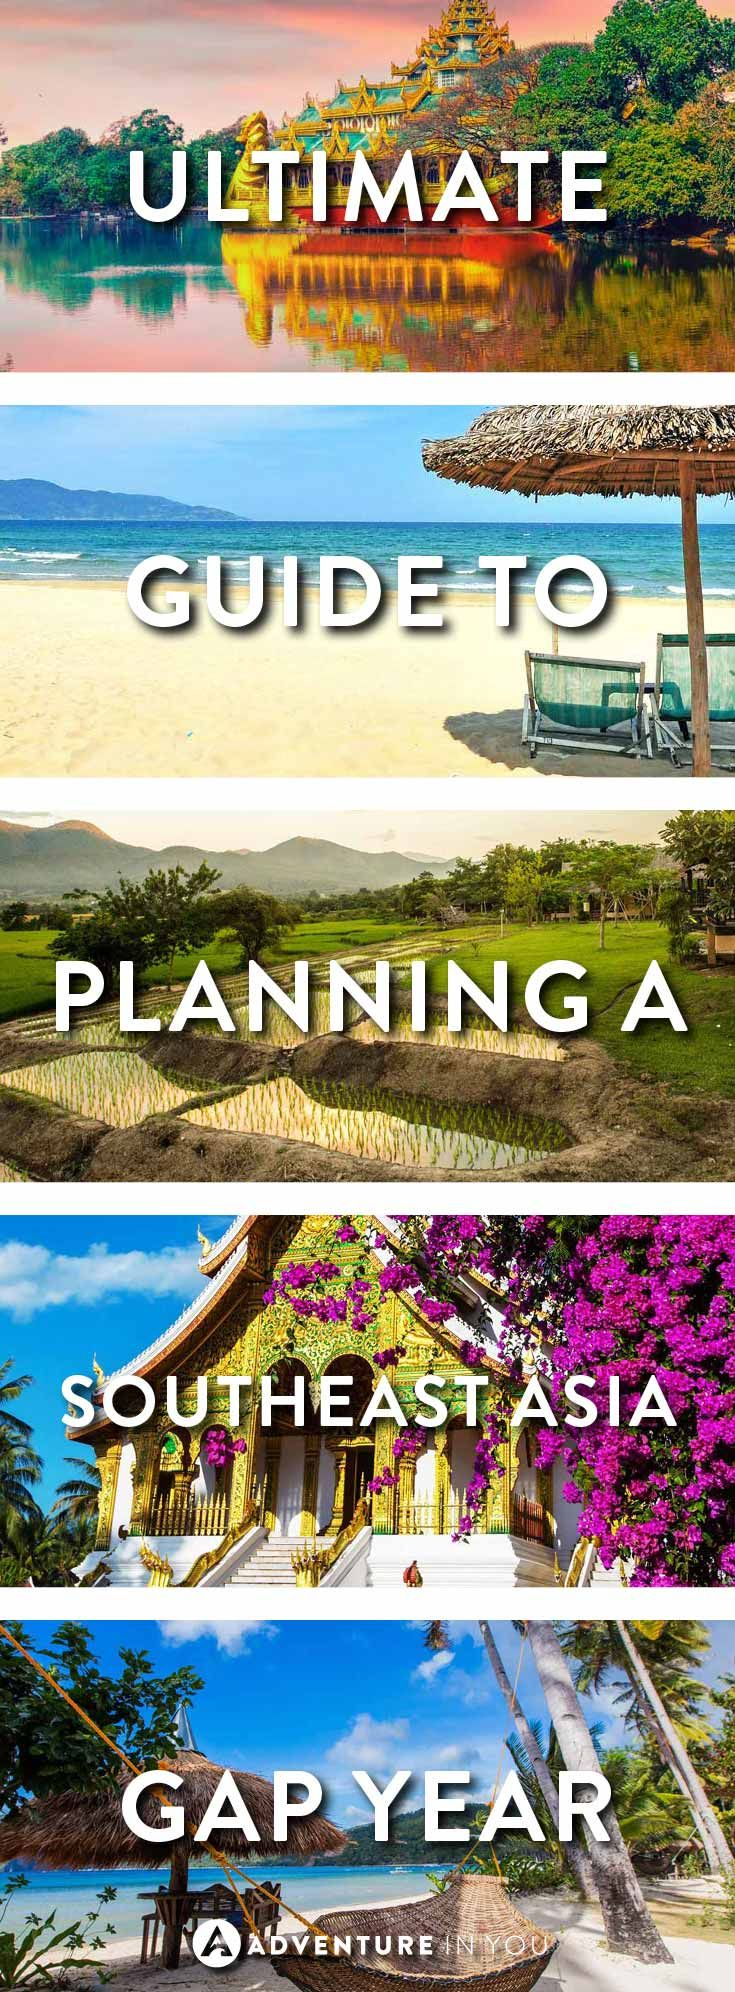 South East Asia | Planning a gap year? Here is the ultimate guide on where to go, what to do, hot to plan it, and how to make money while on the road.